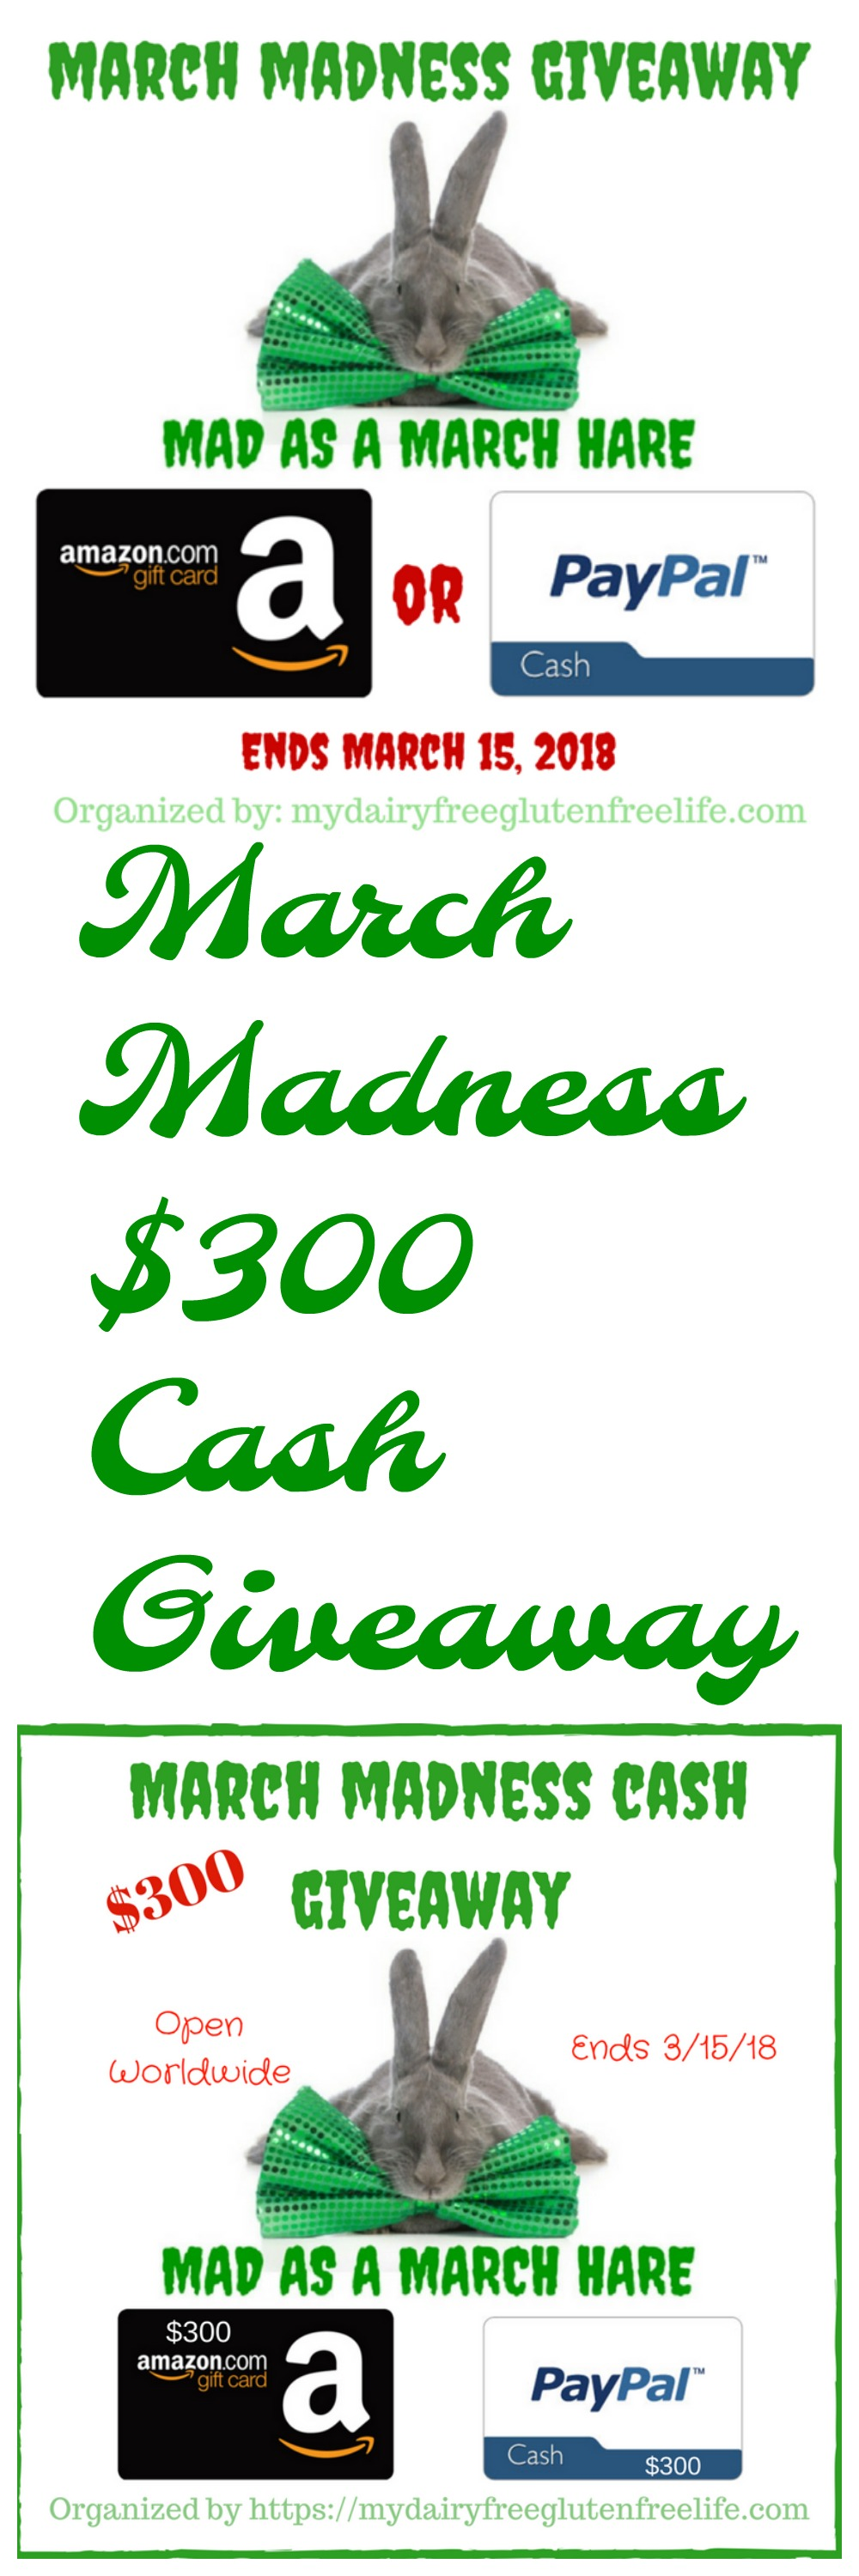 March Madness Cash Giveaway 2018